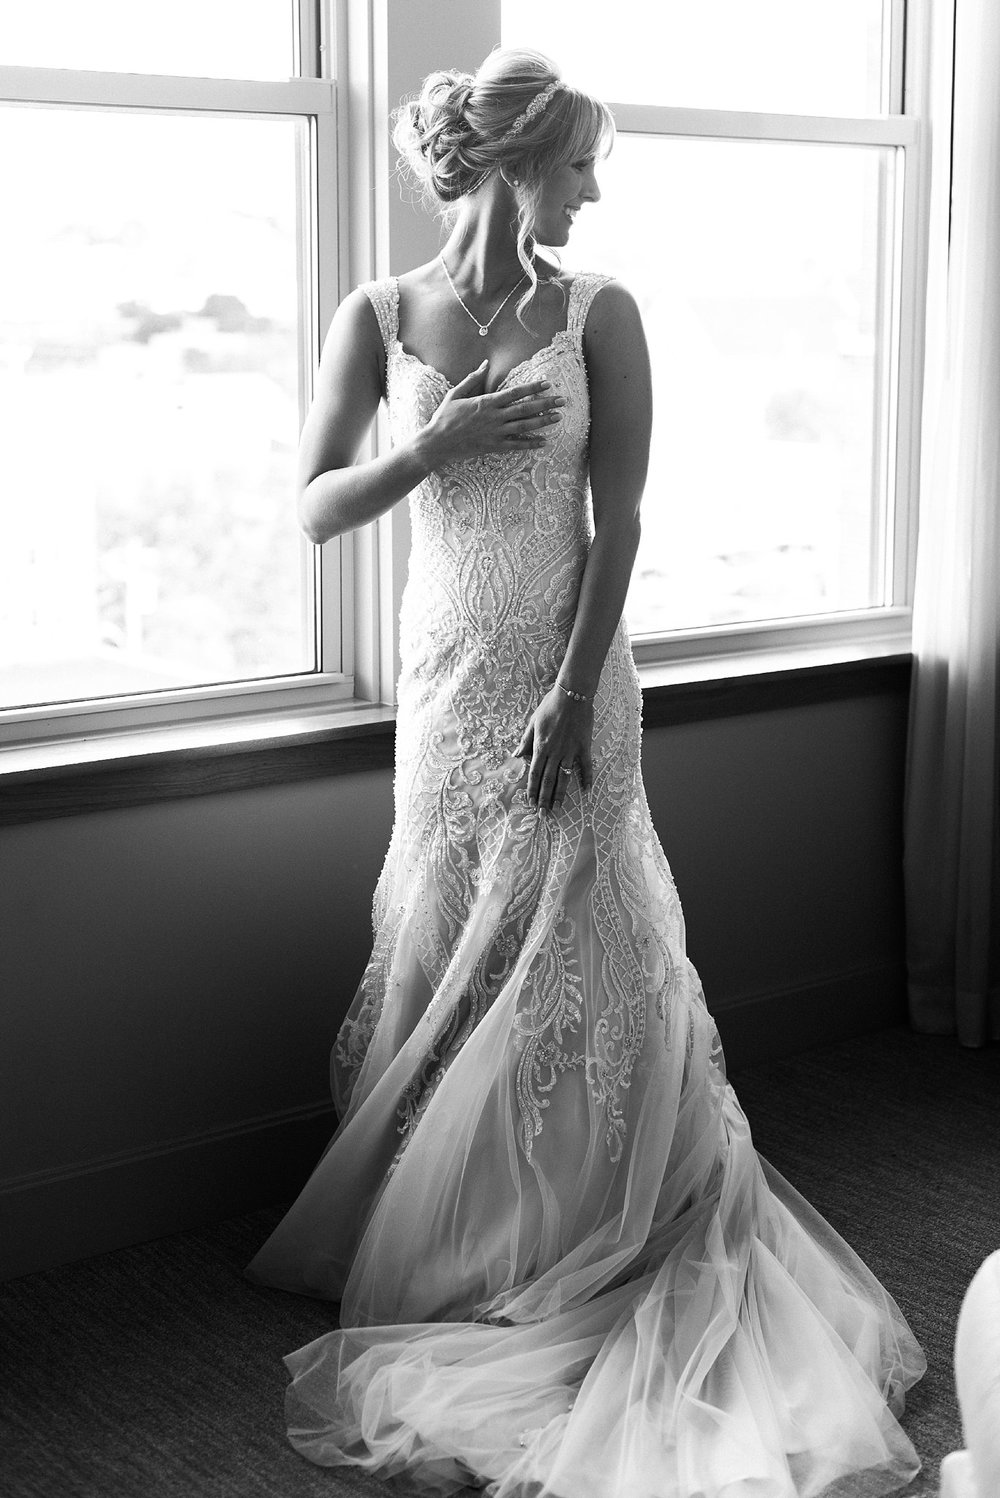 cincinnati wedding photographer69.jpg